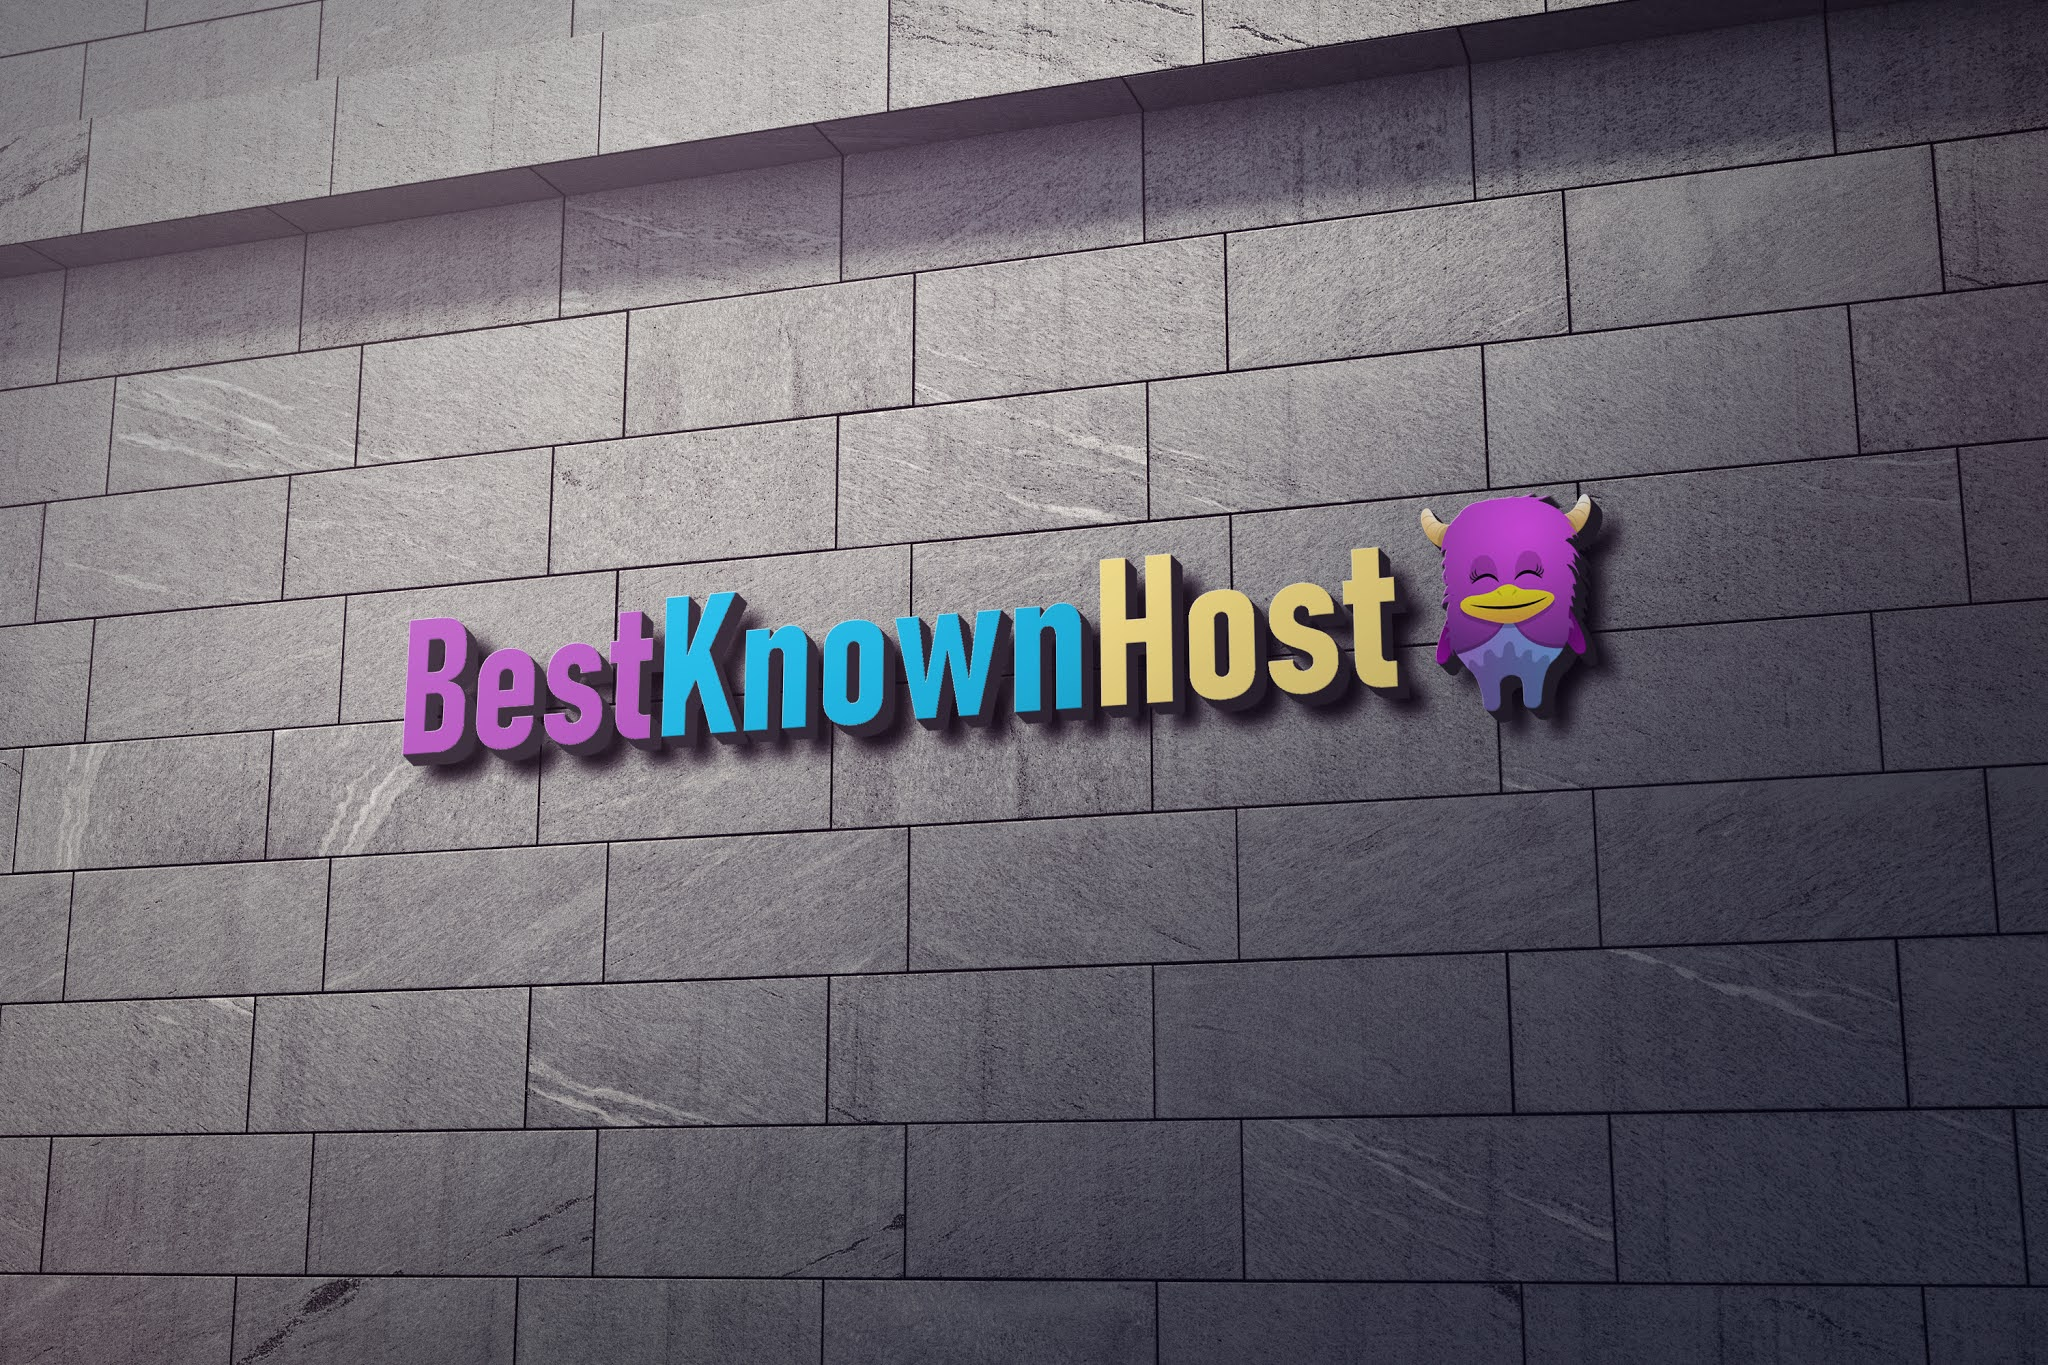 How to Create a New Account with BestKnownHost Cloud Platform and Deploy a Server